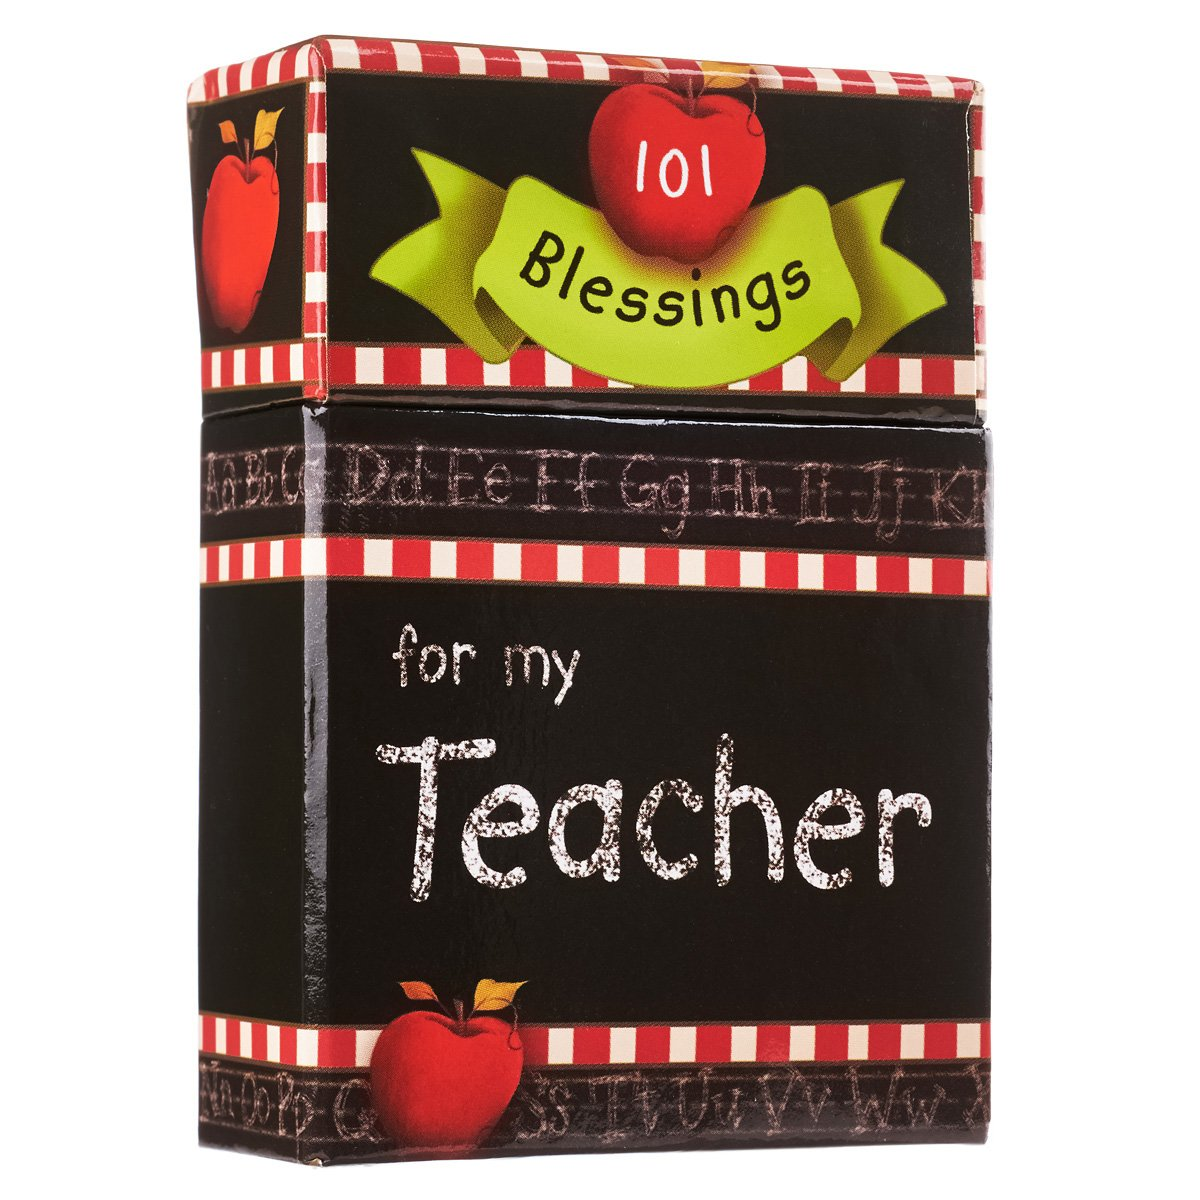 101 Blessings My Teacher Cards